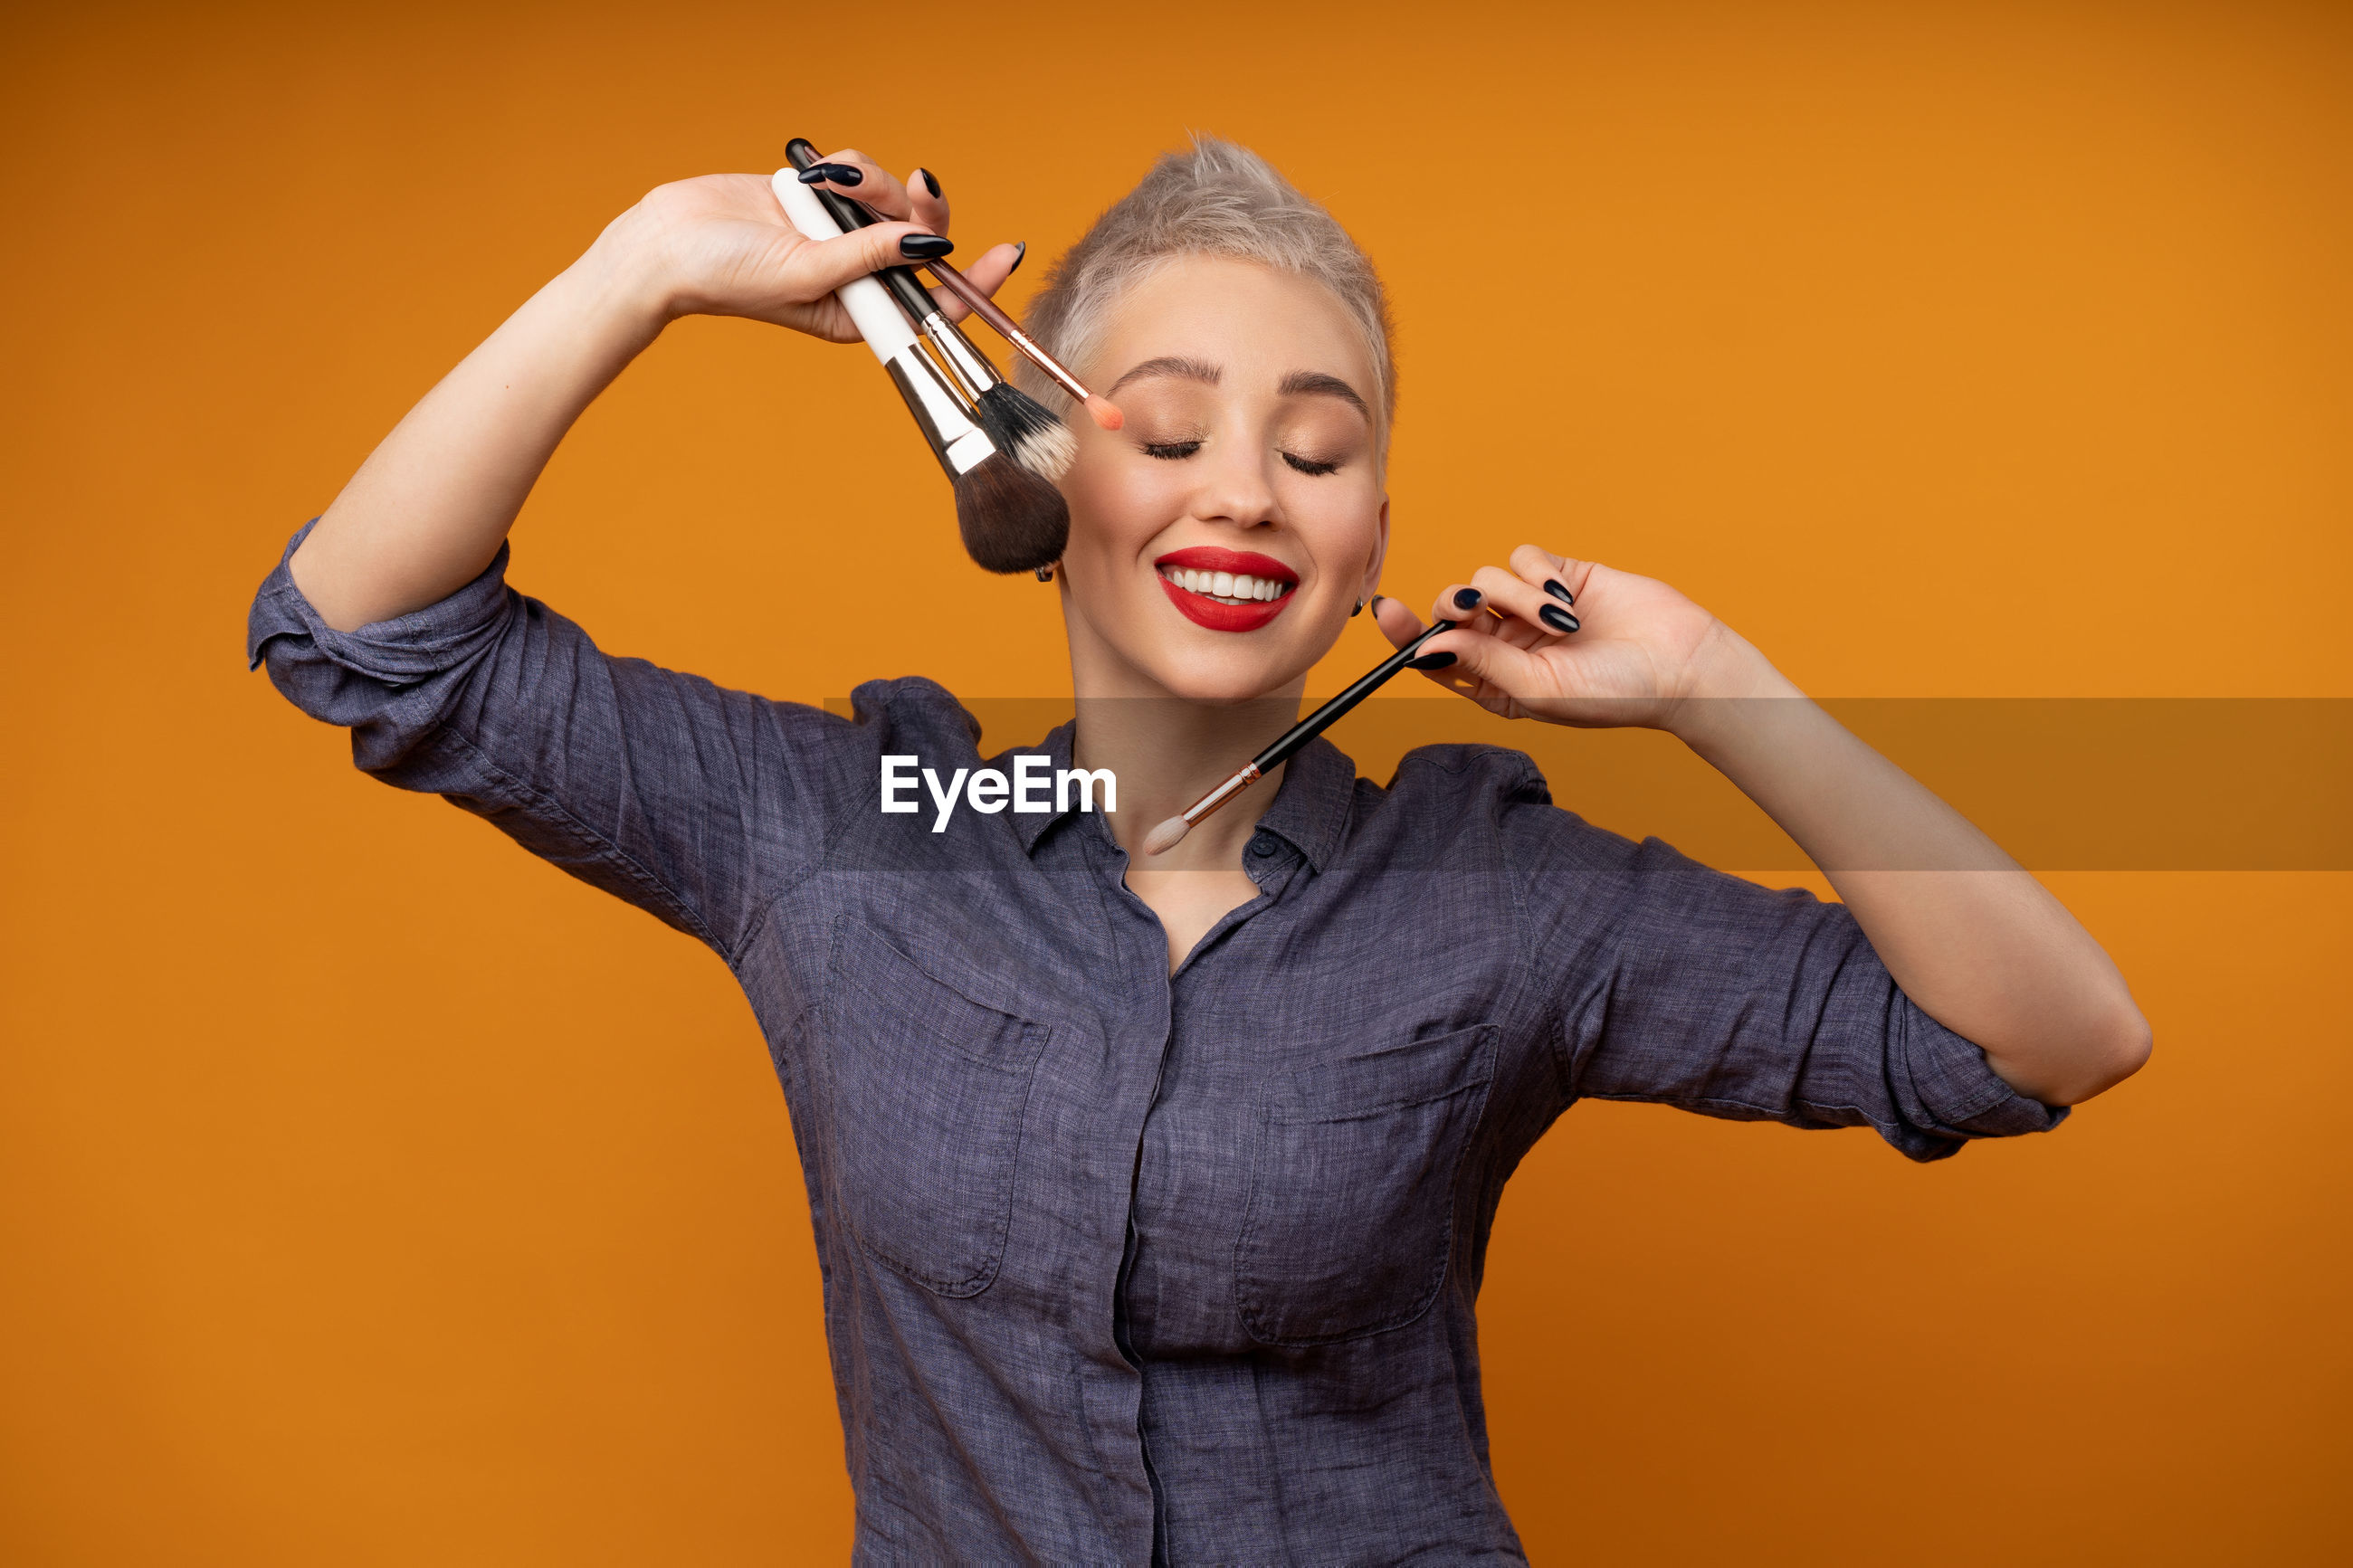 Smiling woman with make-up brush in mouth against orange background